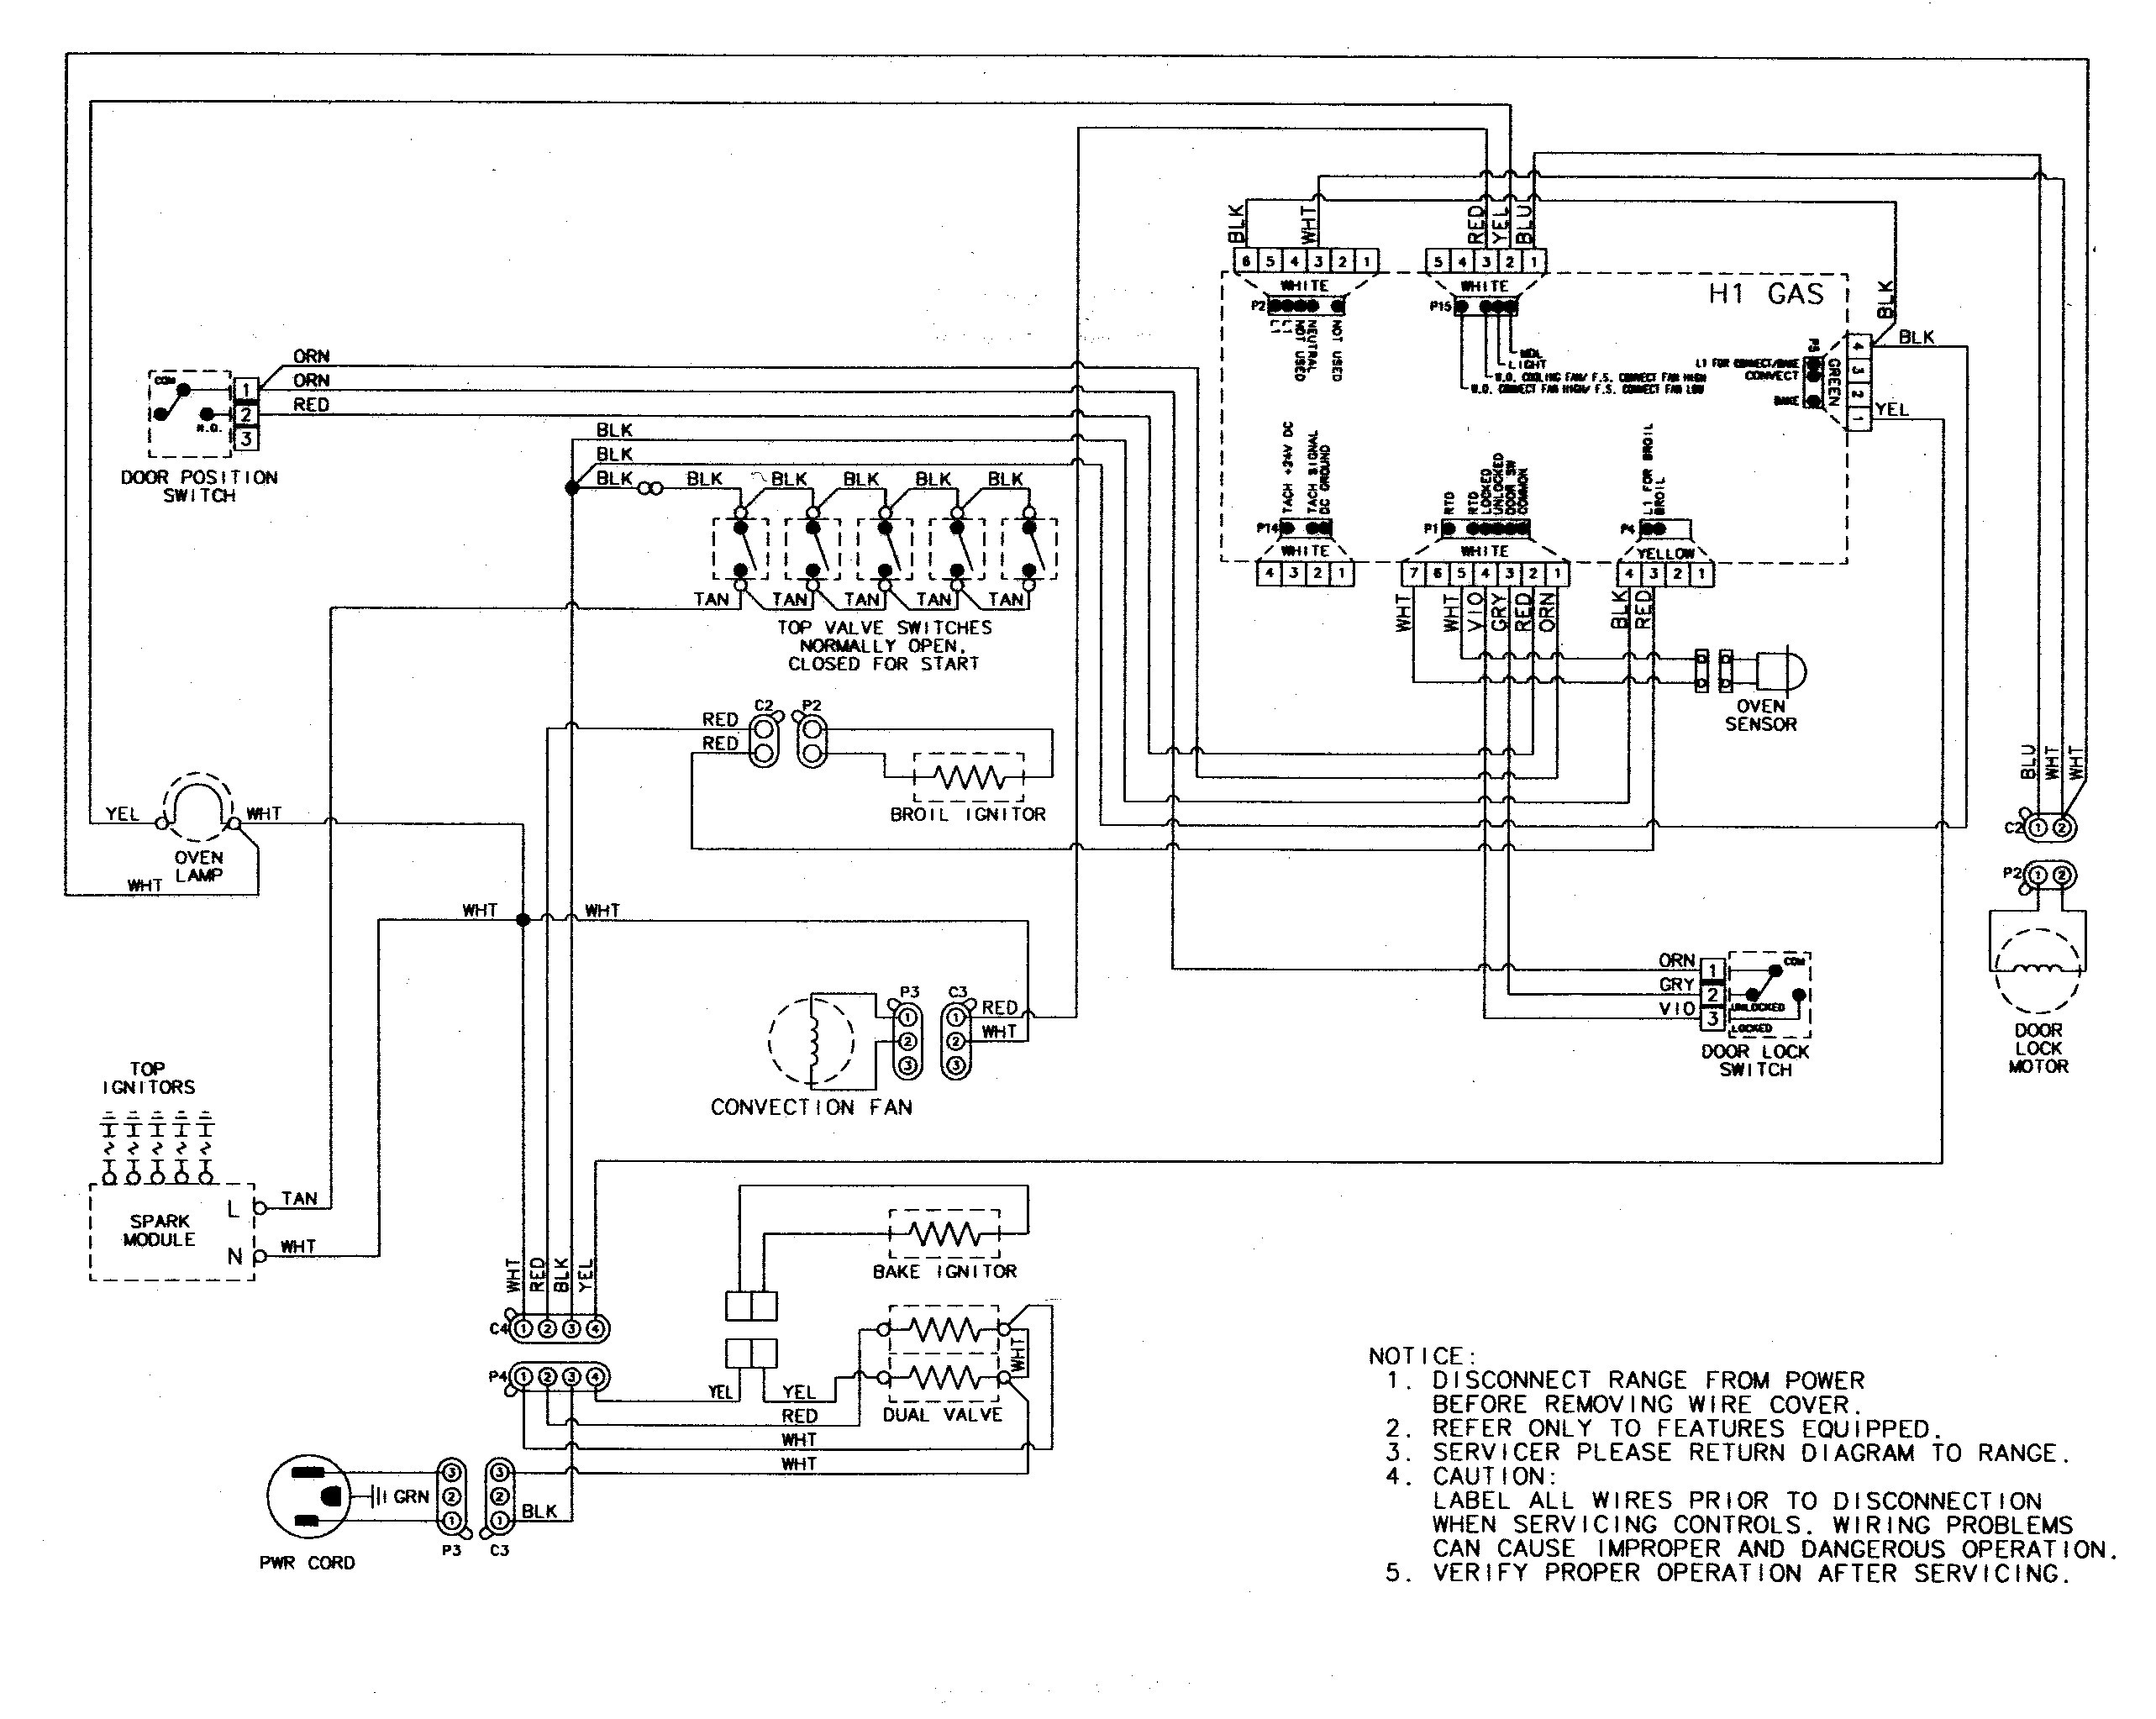 Ge Hotpoint Range Wiring Diagram - 20.16.danishfashion-mode.de •